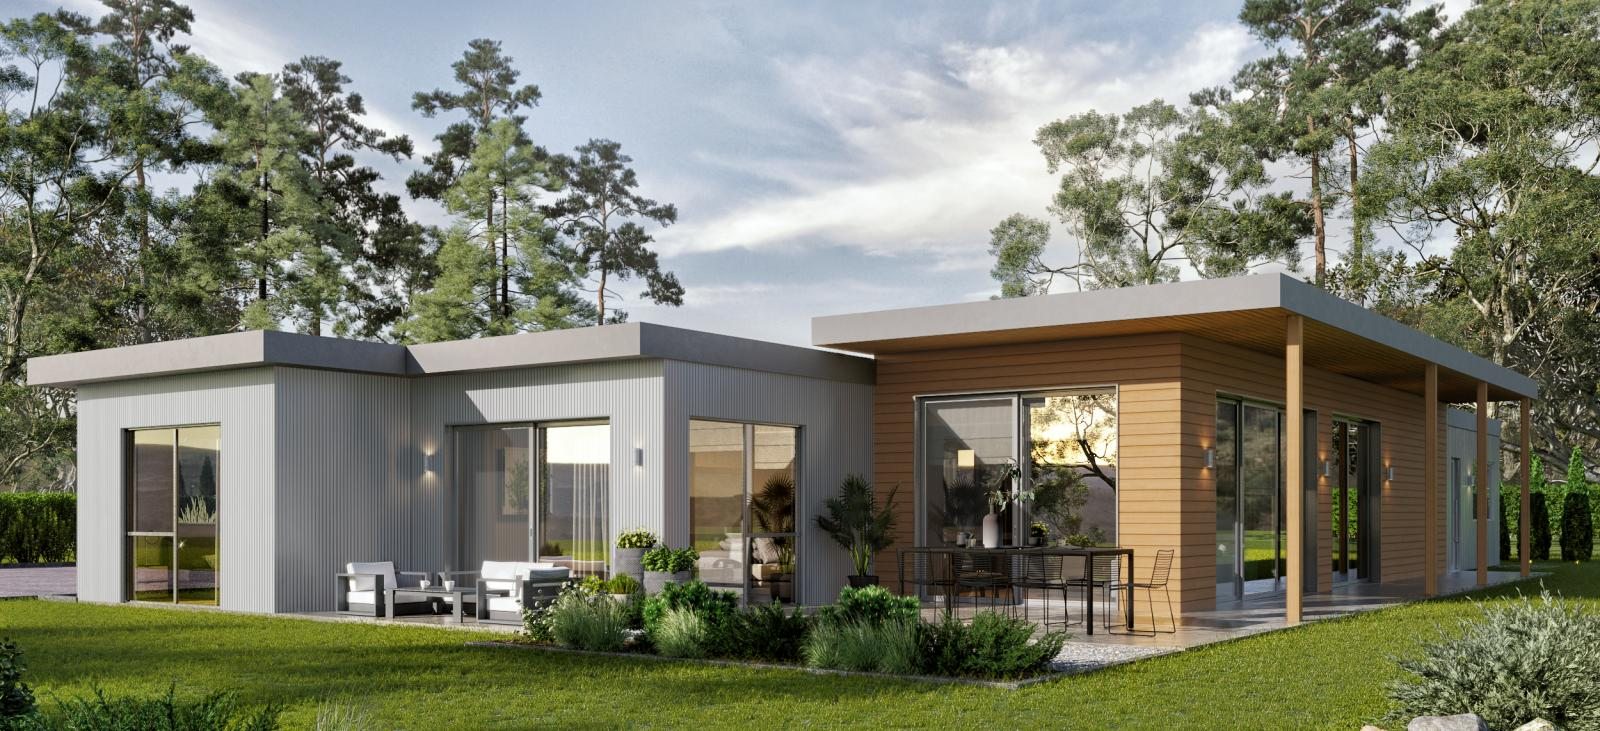 Prefab homes are the safest, healthiest option for homeowners.